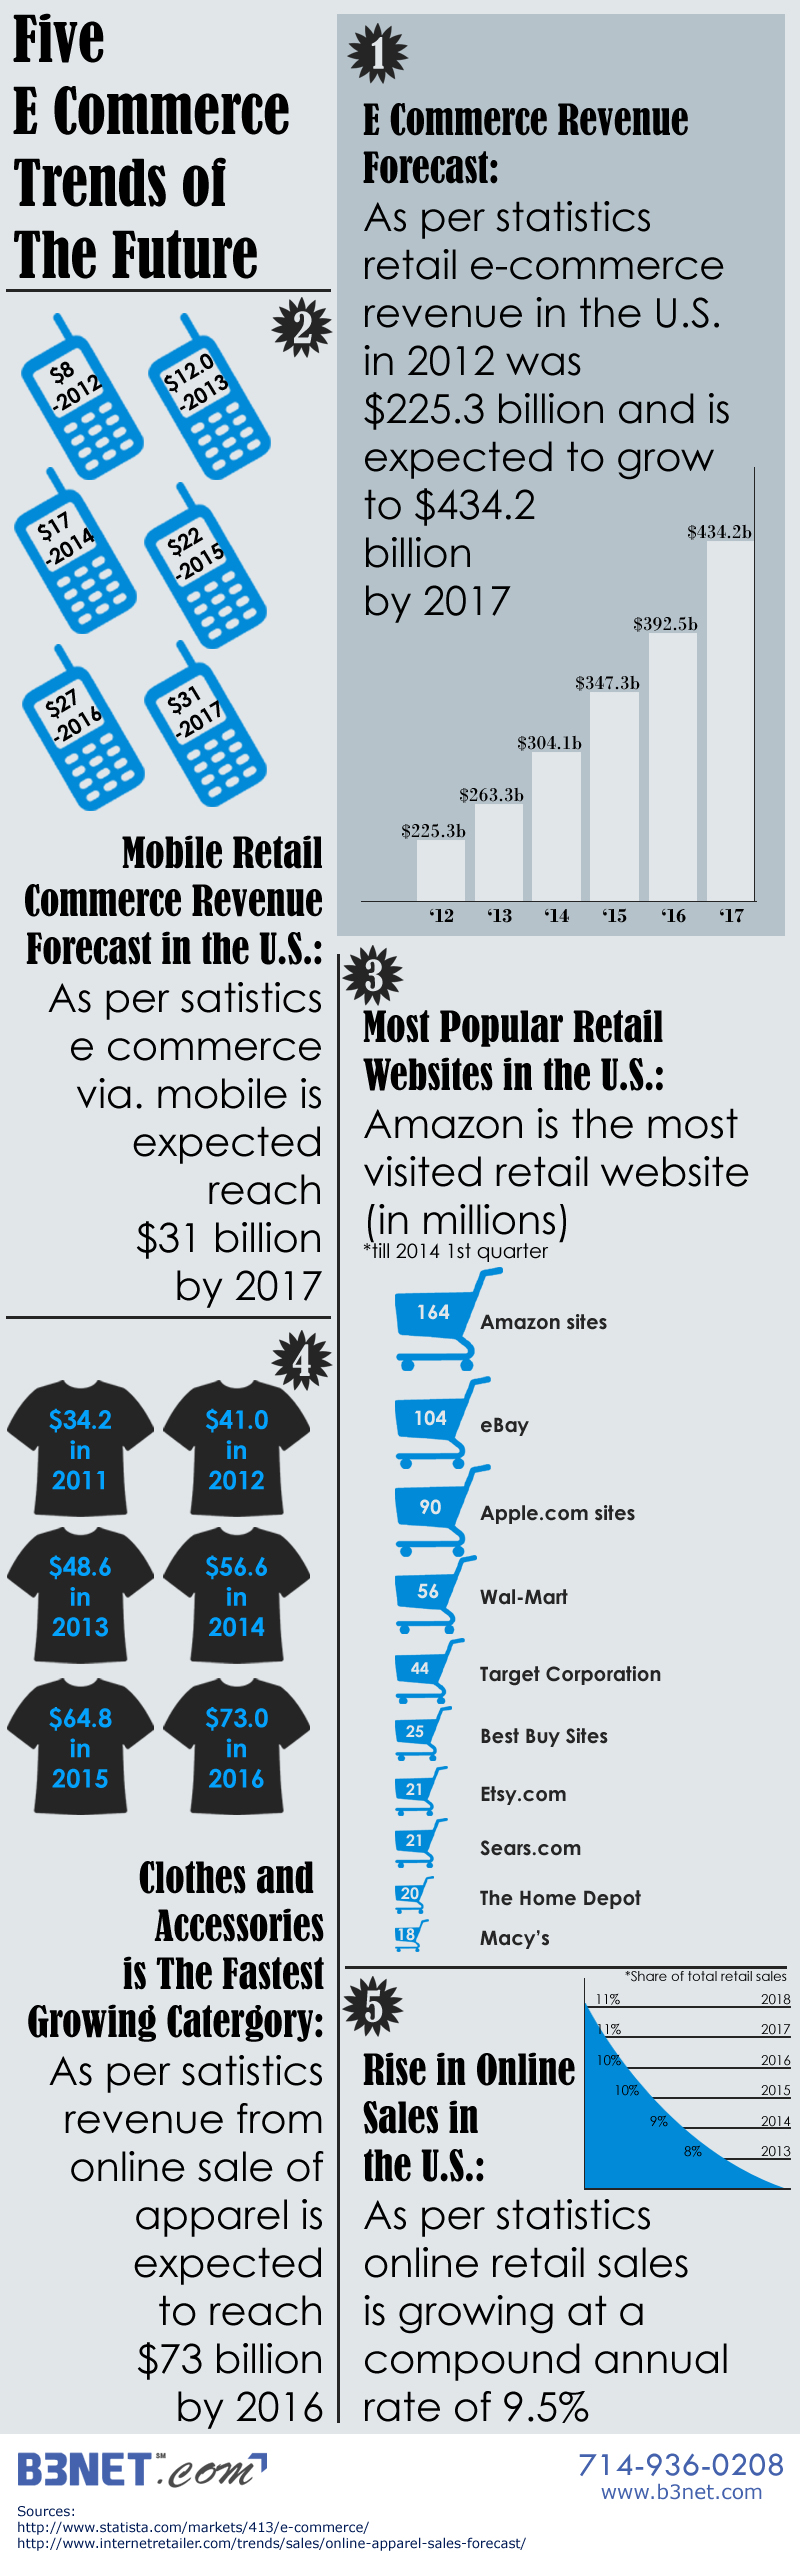 Infographic: Five Ecommerce Trends of the Future - Image 1